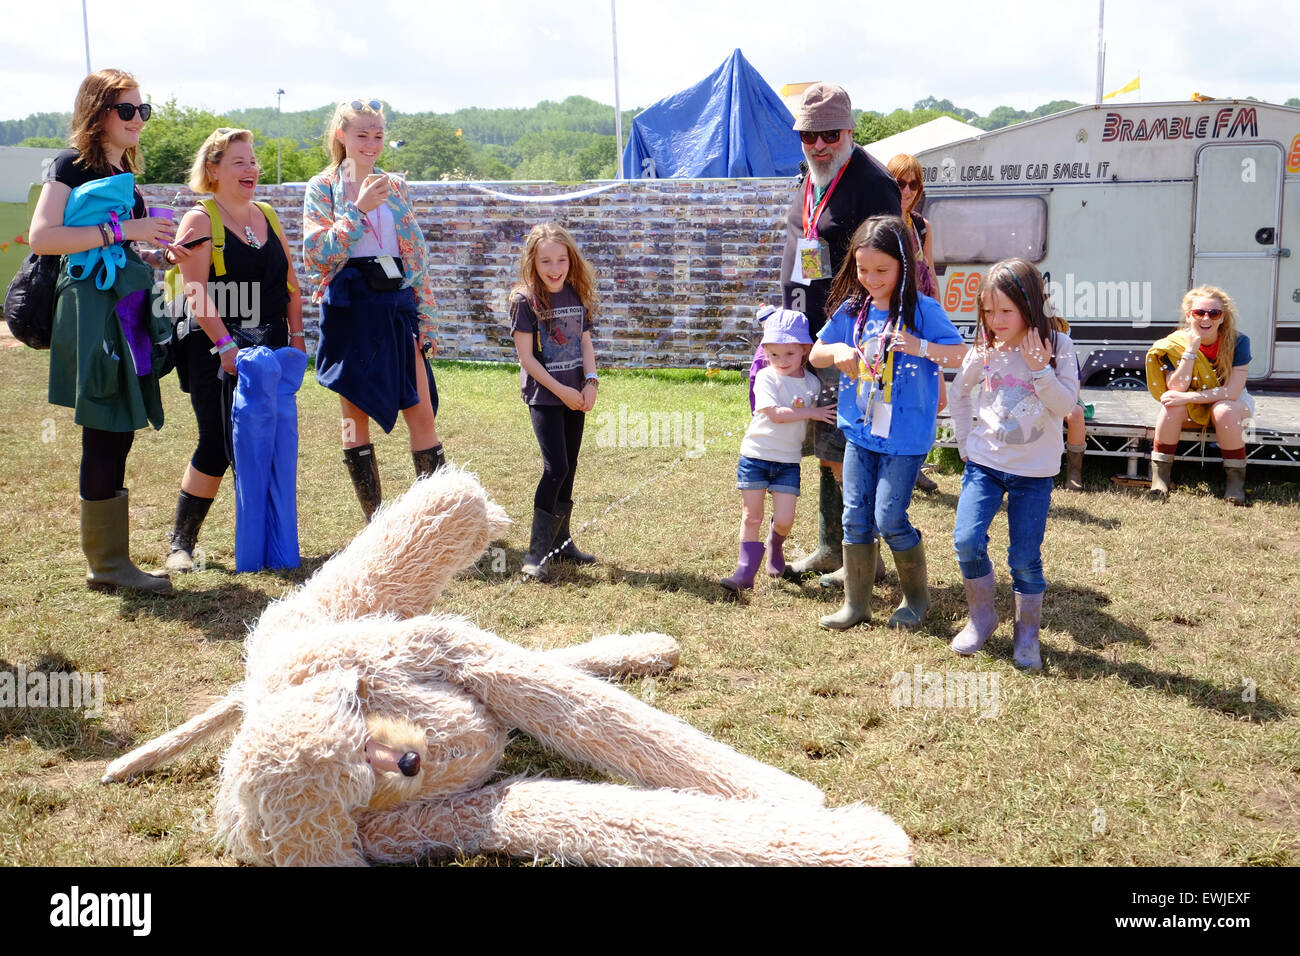 Glastonbury Festival, Somerset, UK. 27 June 2015. The festival dog, in reality a performance artist that exhibits - Stock Image